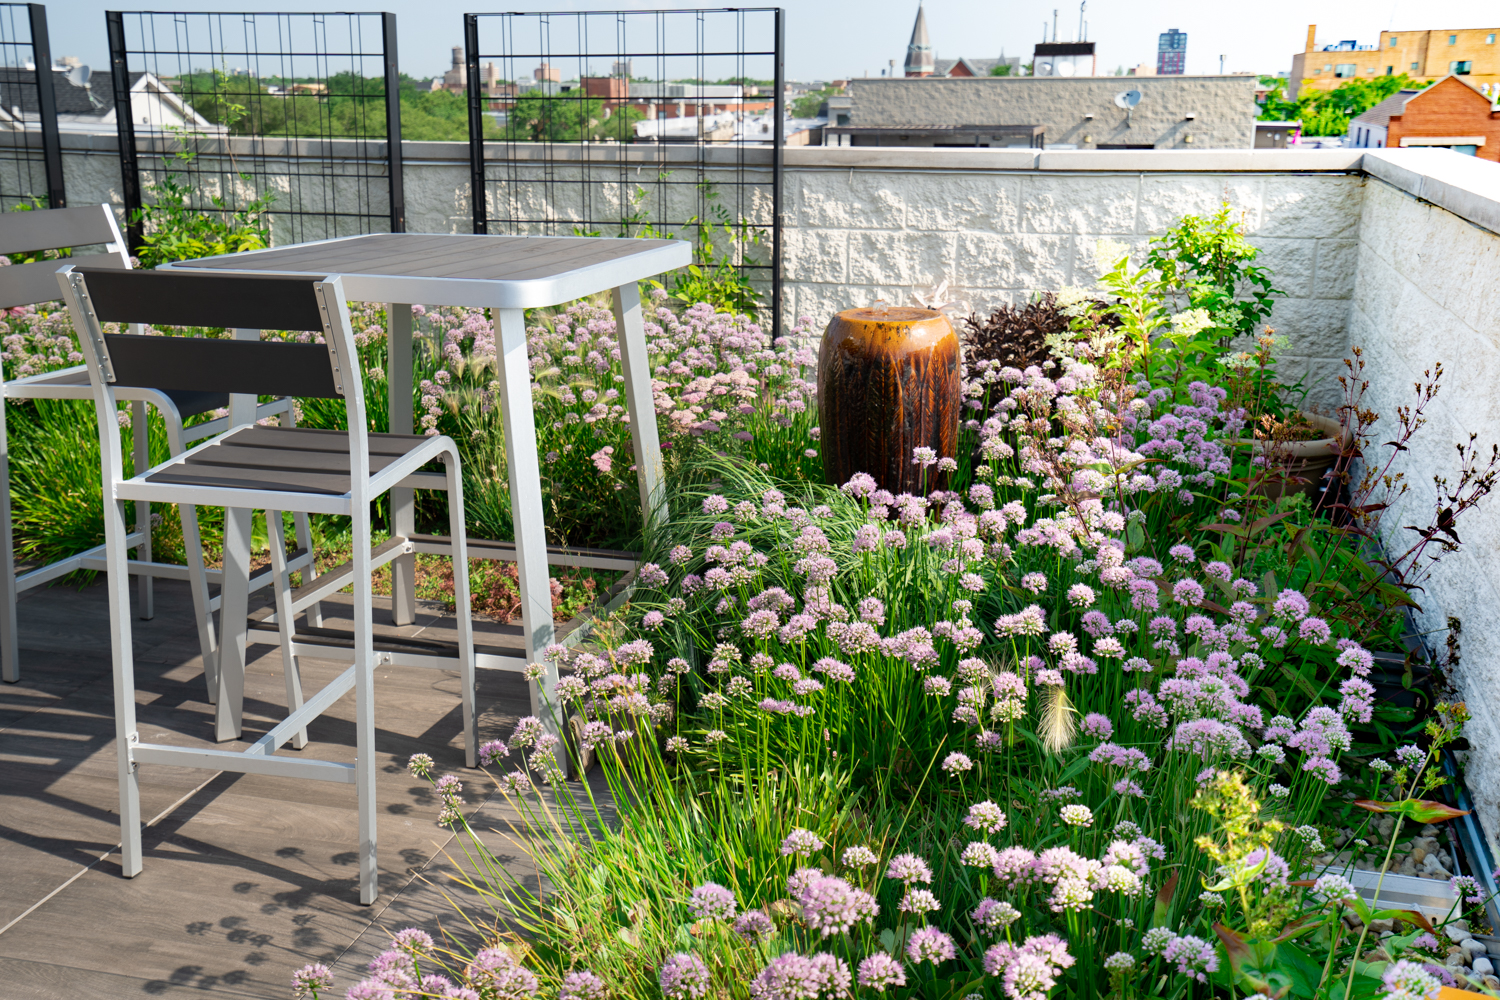 Chicago Roof Garden by Ecogardens-2.jpg